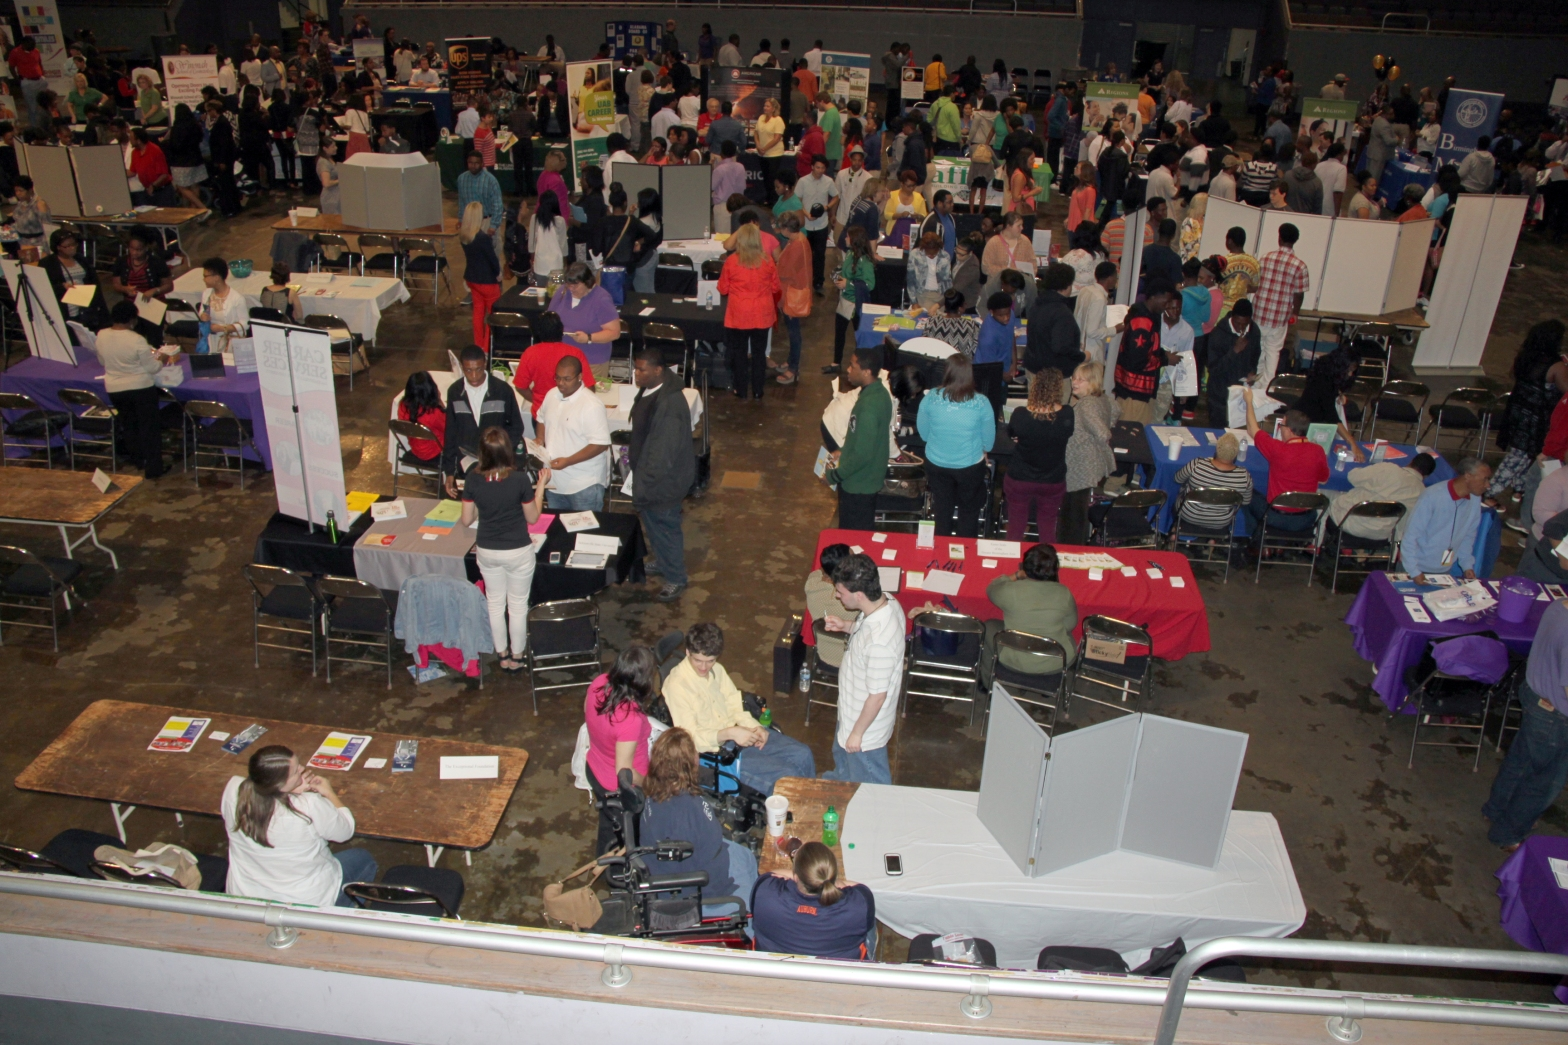 More than 300 students, parents, and educators attended the fair